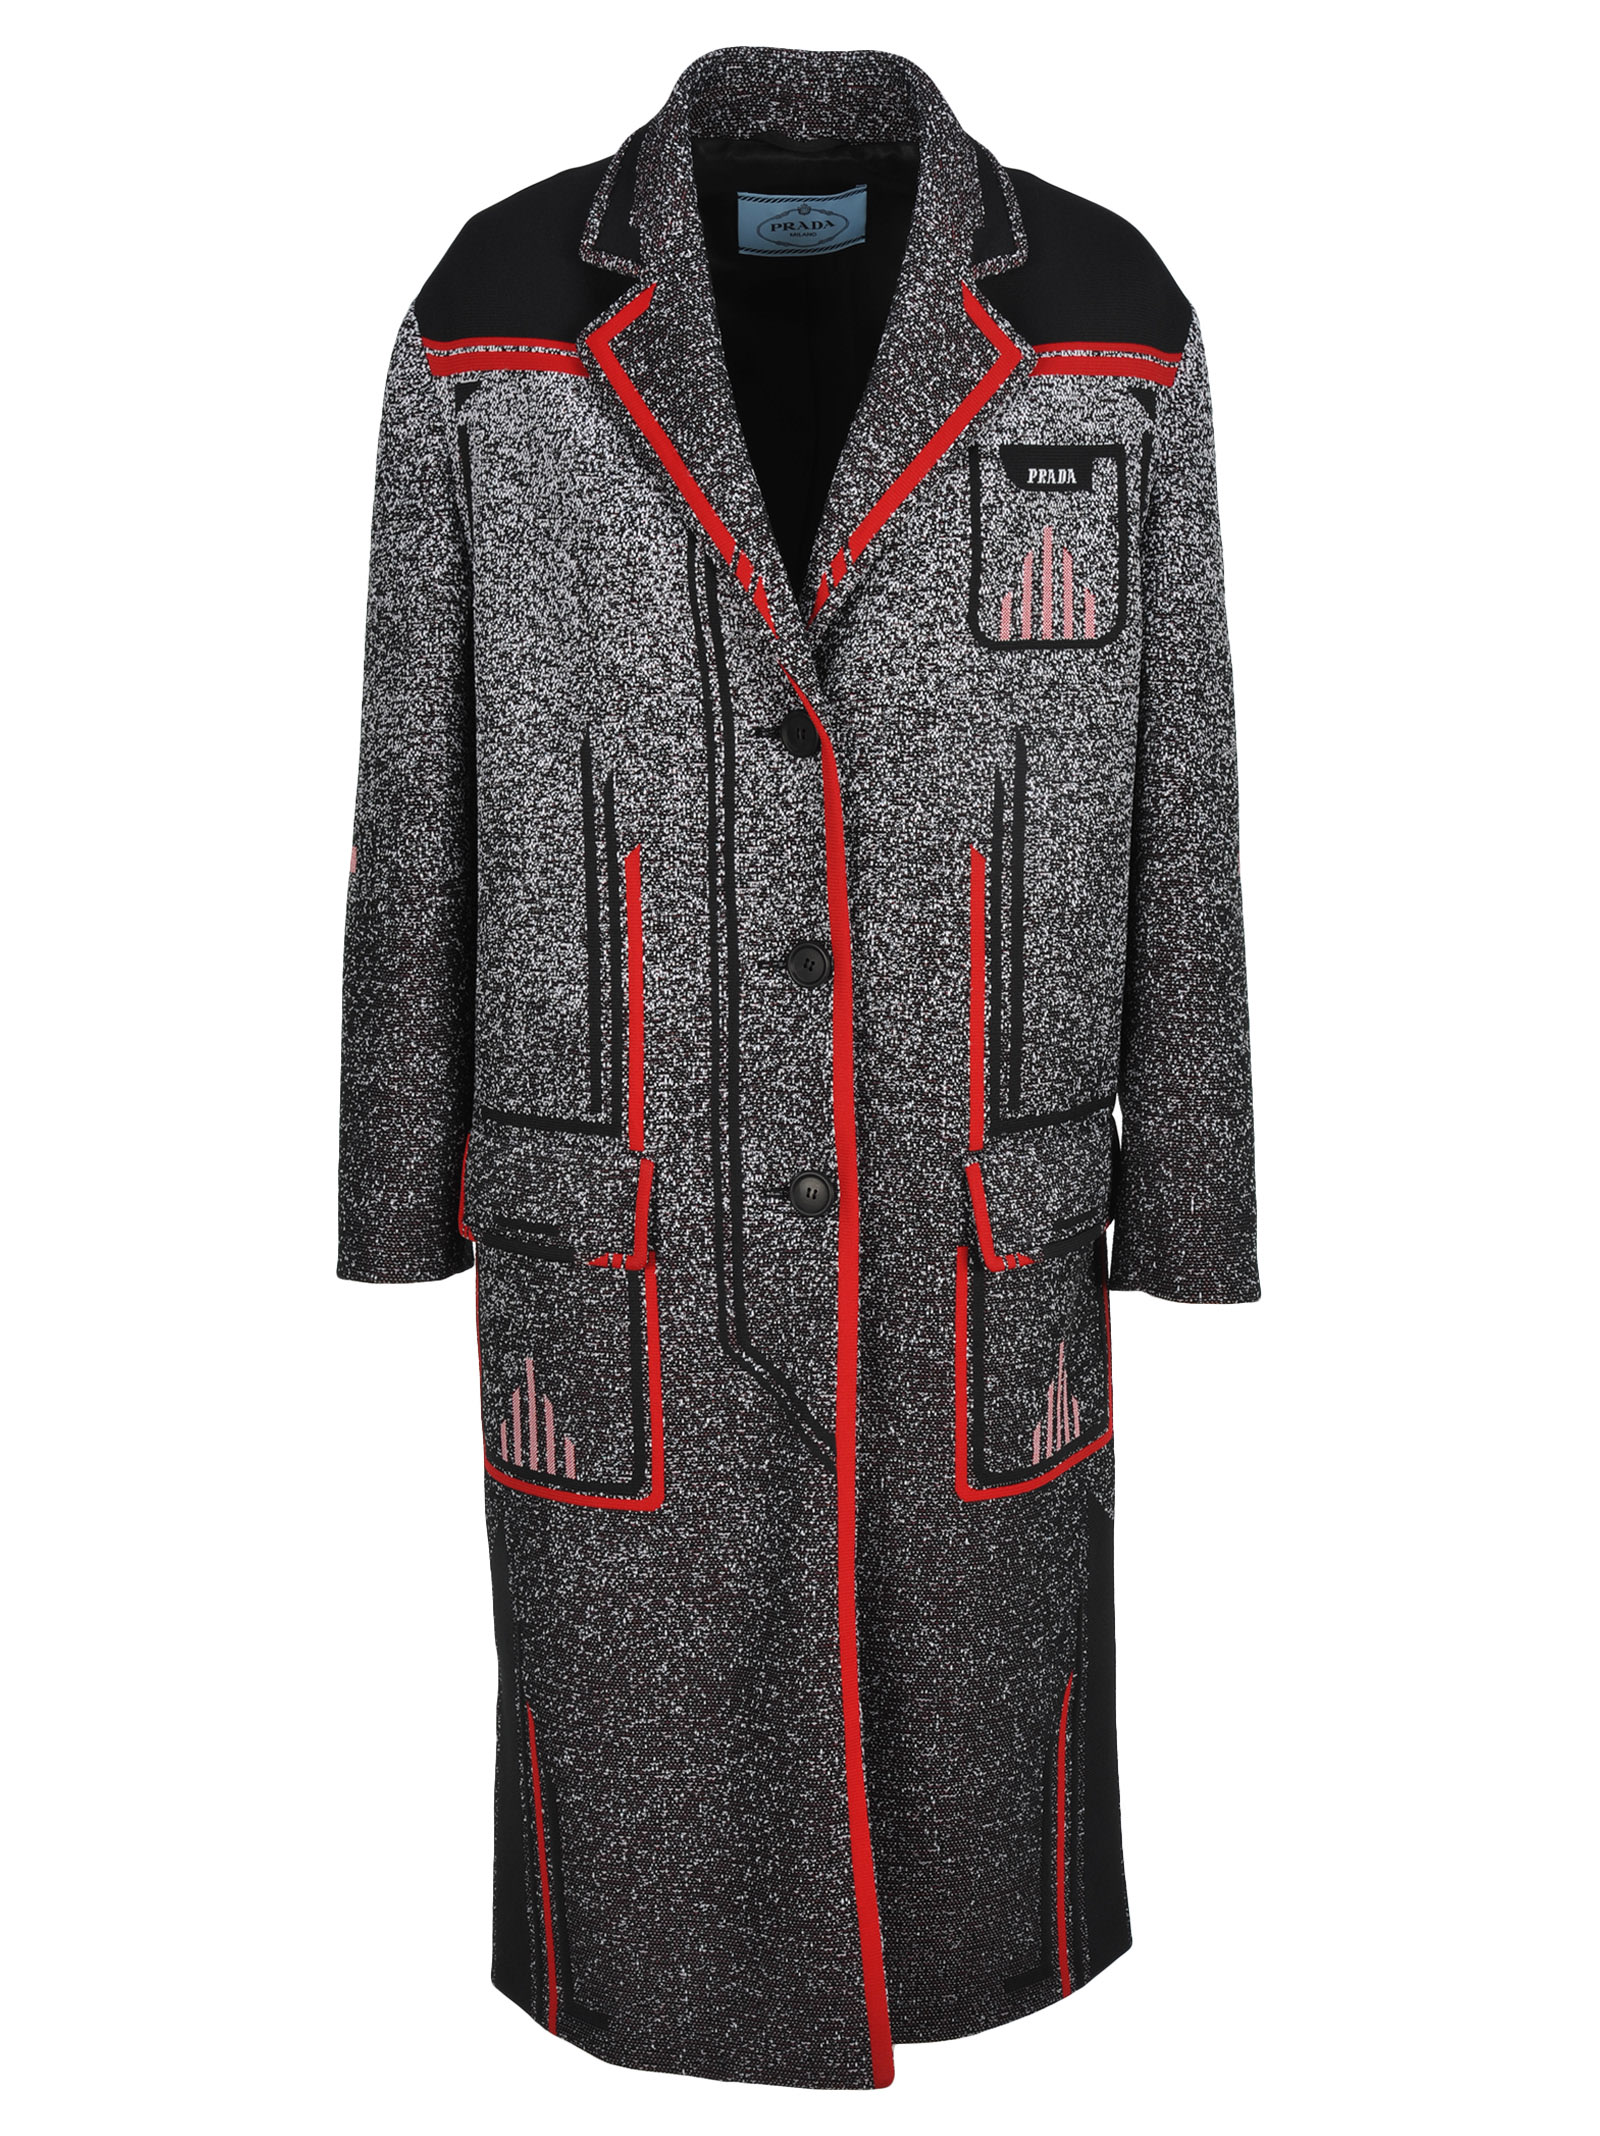 Prada Prada Technical Mouliné Jacquard Coat